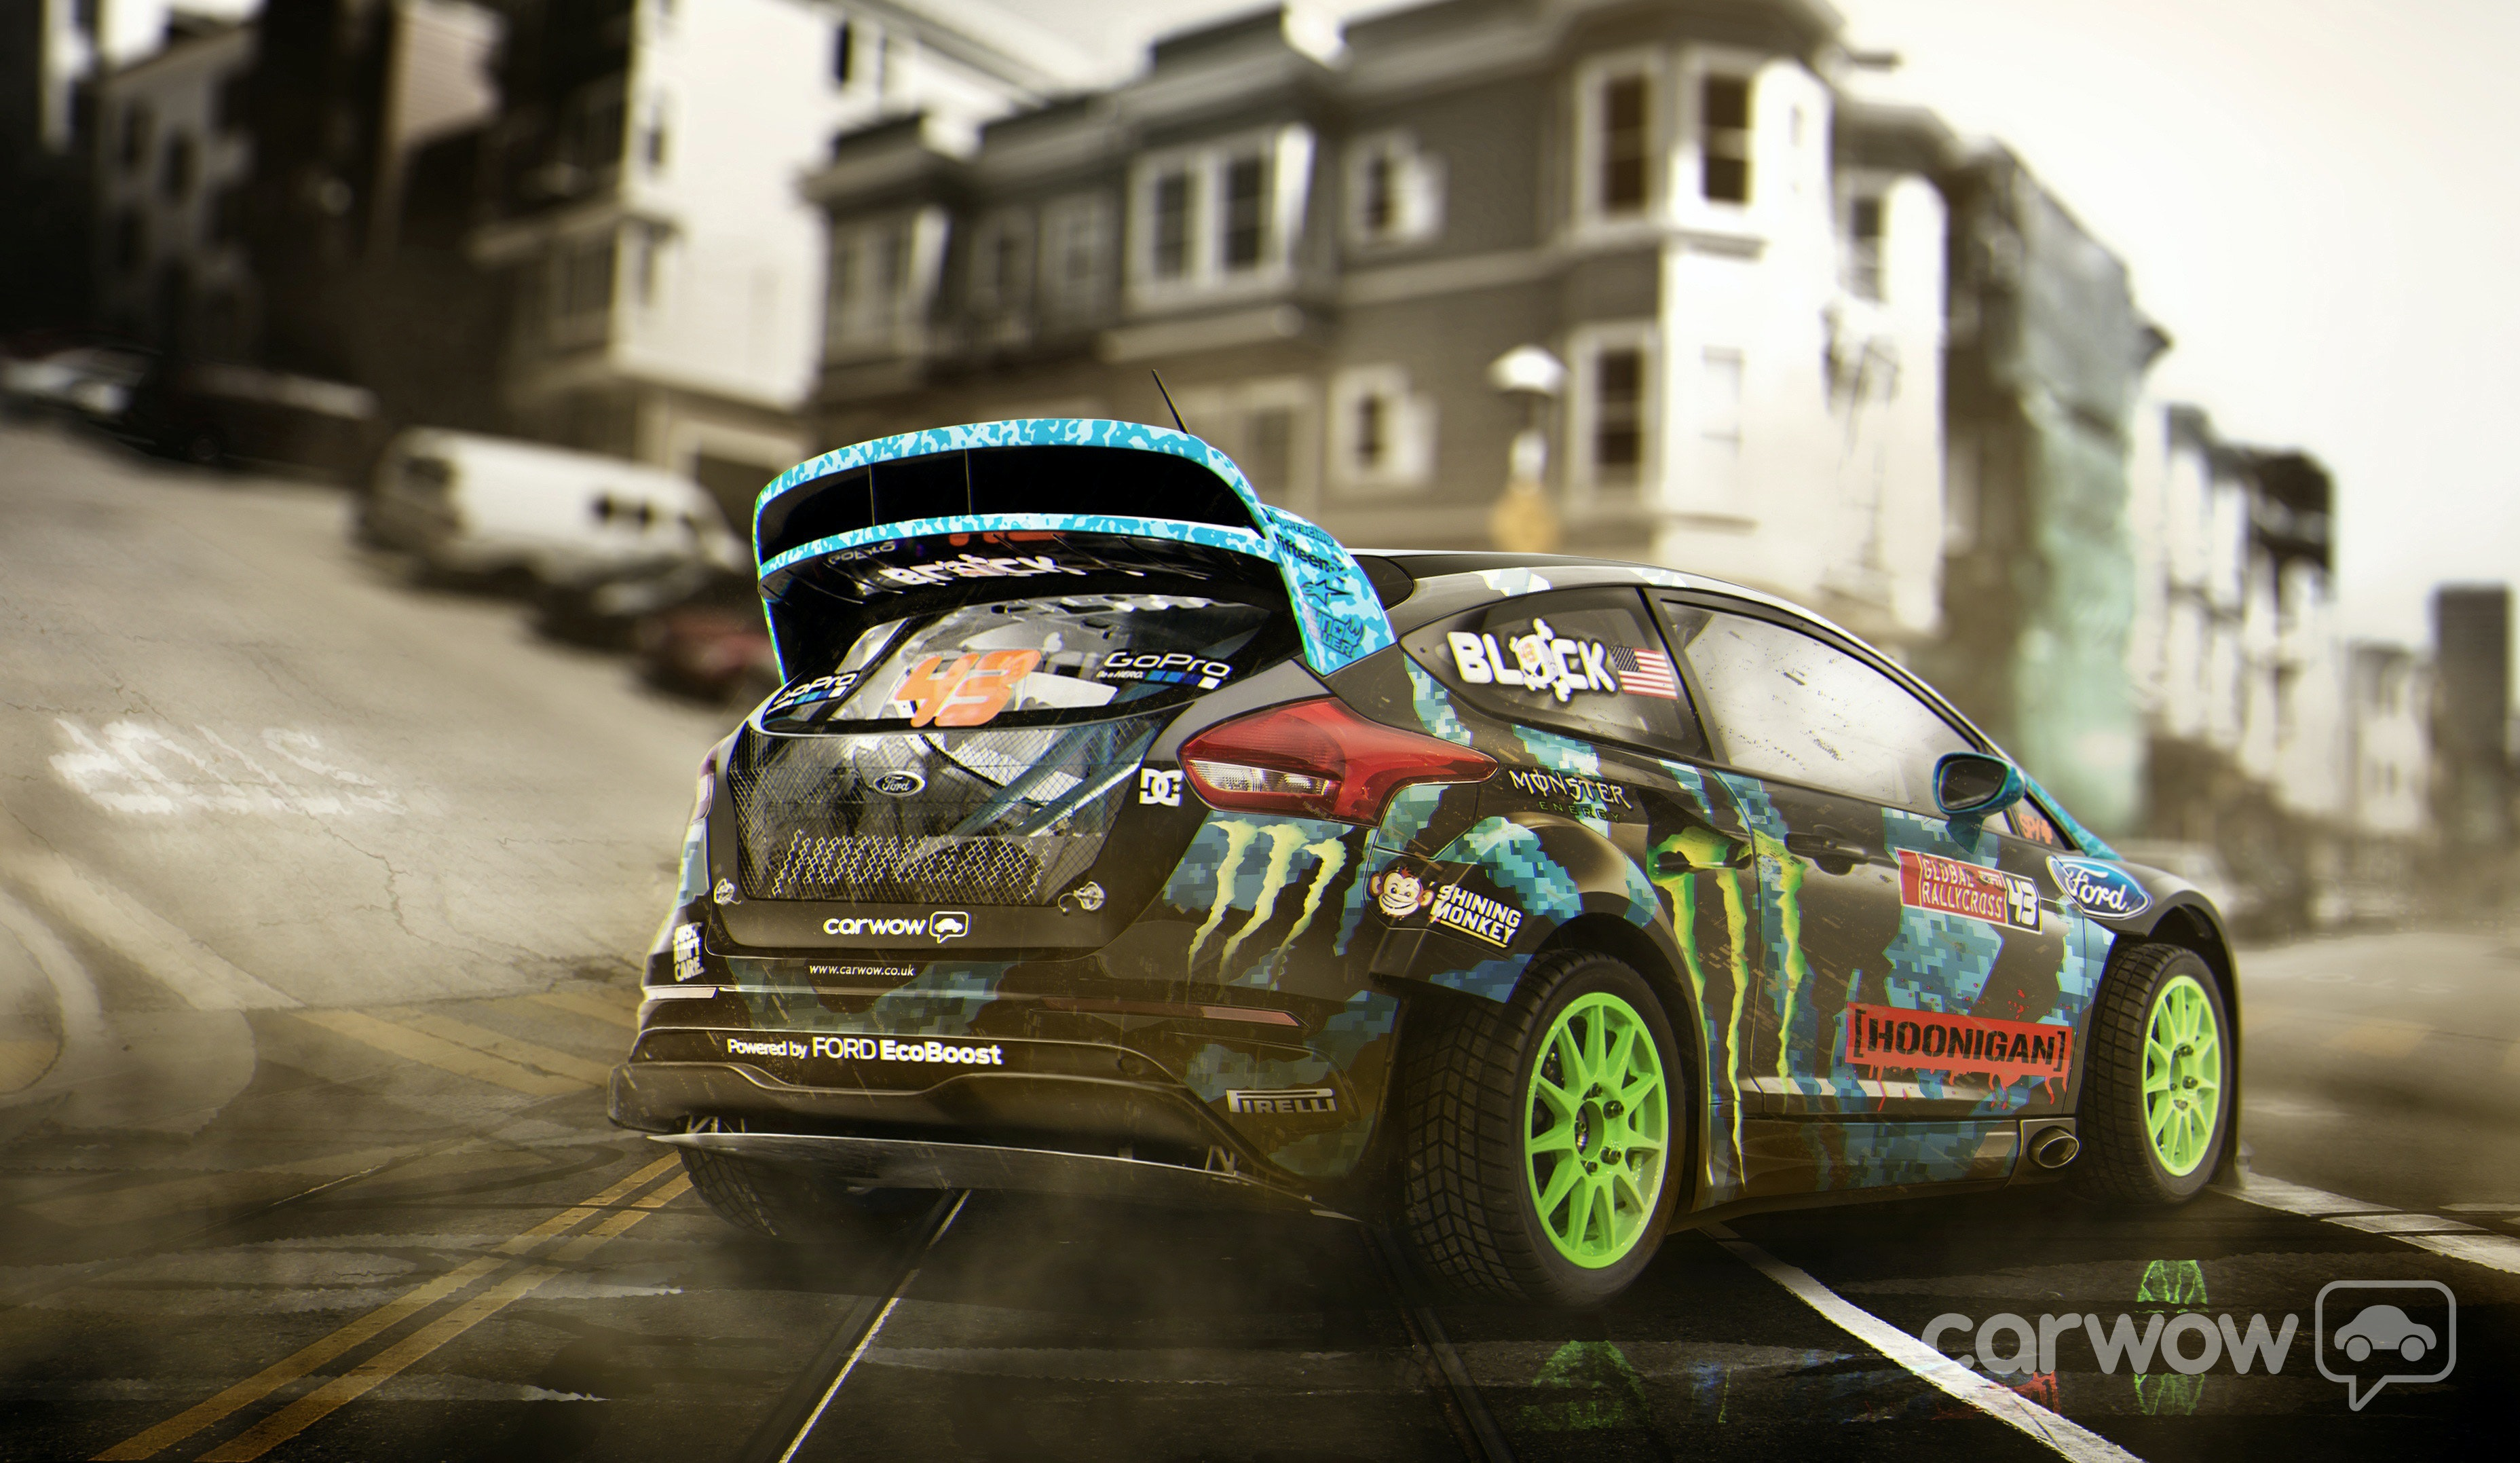 2015 Ken Block Ford Focus Rs Gymkhana Imagined By Carwow